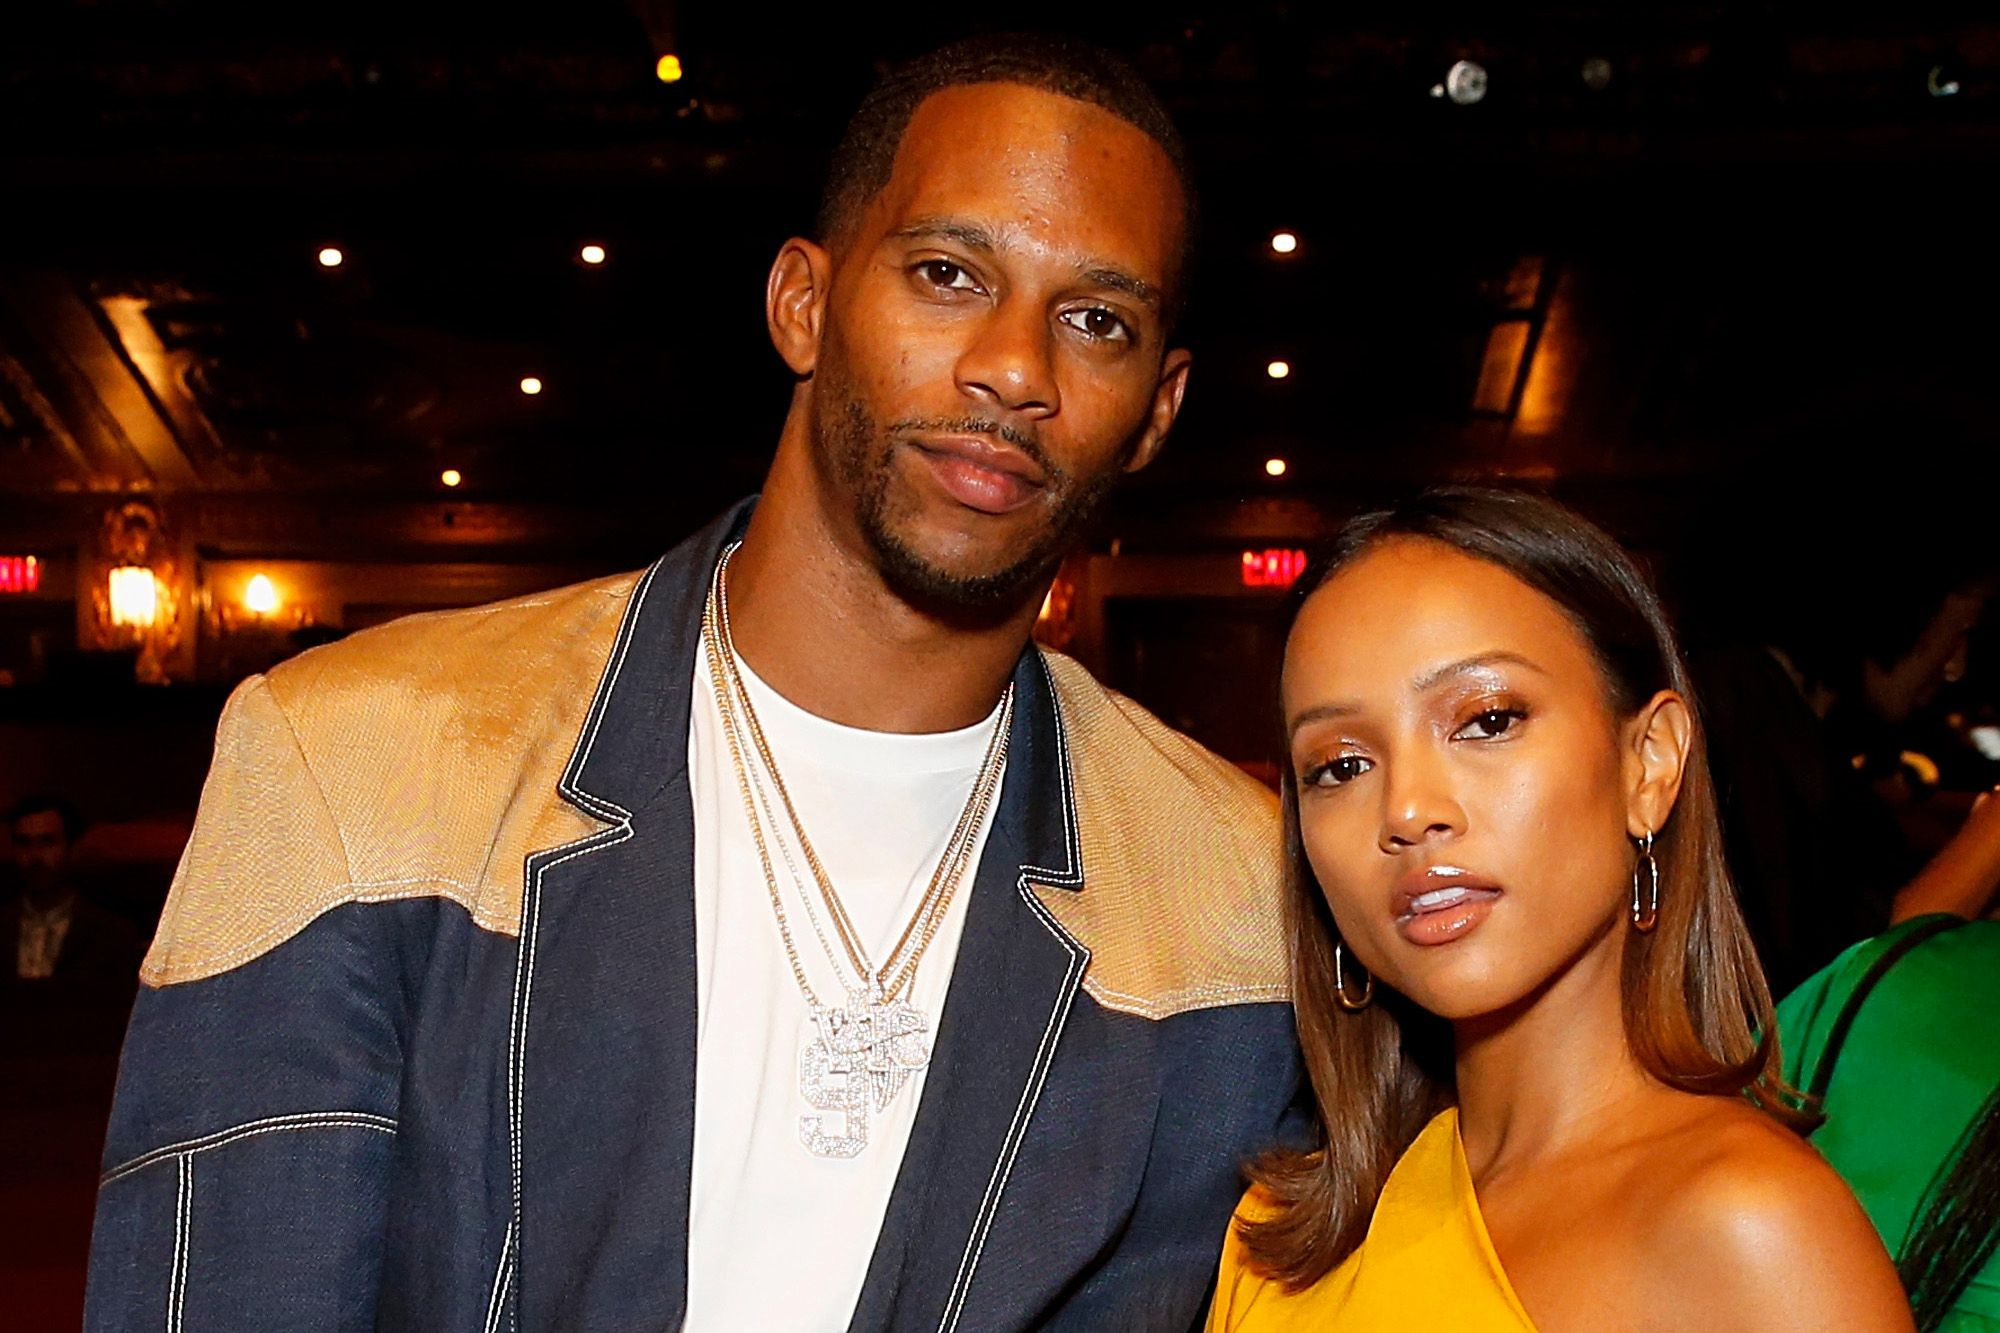 Karrueche Tran And Victor Cruz Reportedly No Longer An Item – Here's Why They Broke Up After 3 Years!